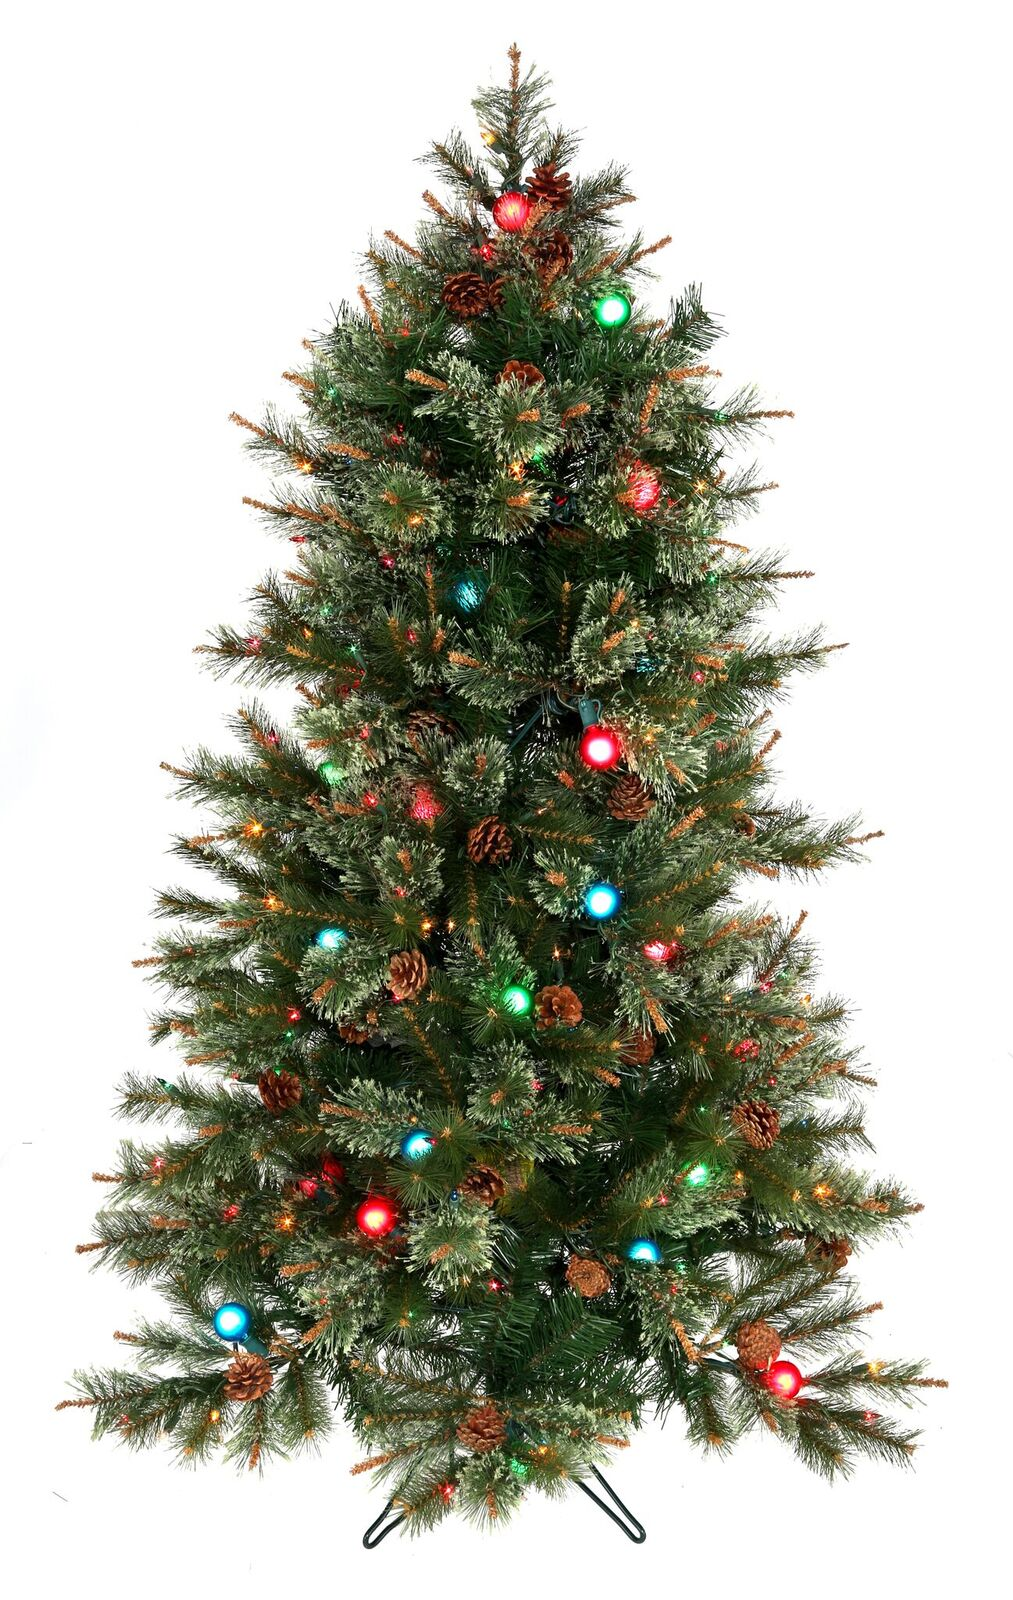 Pictures Of Christmas Trees.Cottonwood Twinkle And G40 Pre Lit Artificial Christmas Tree